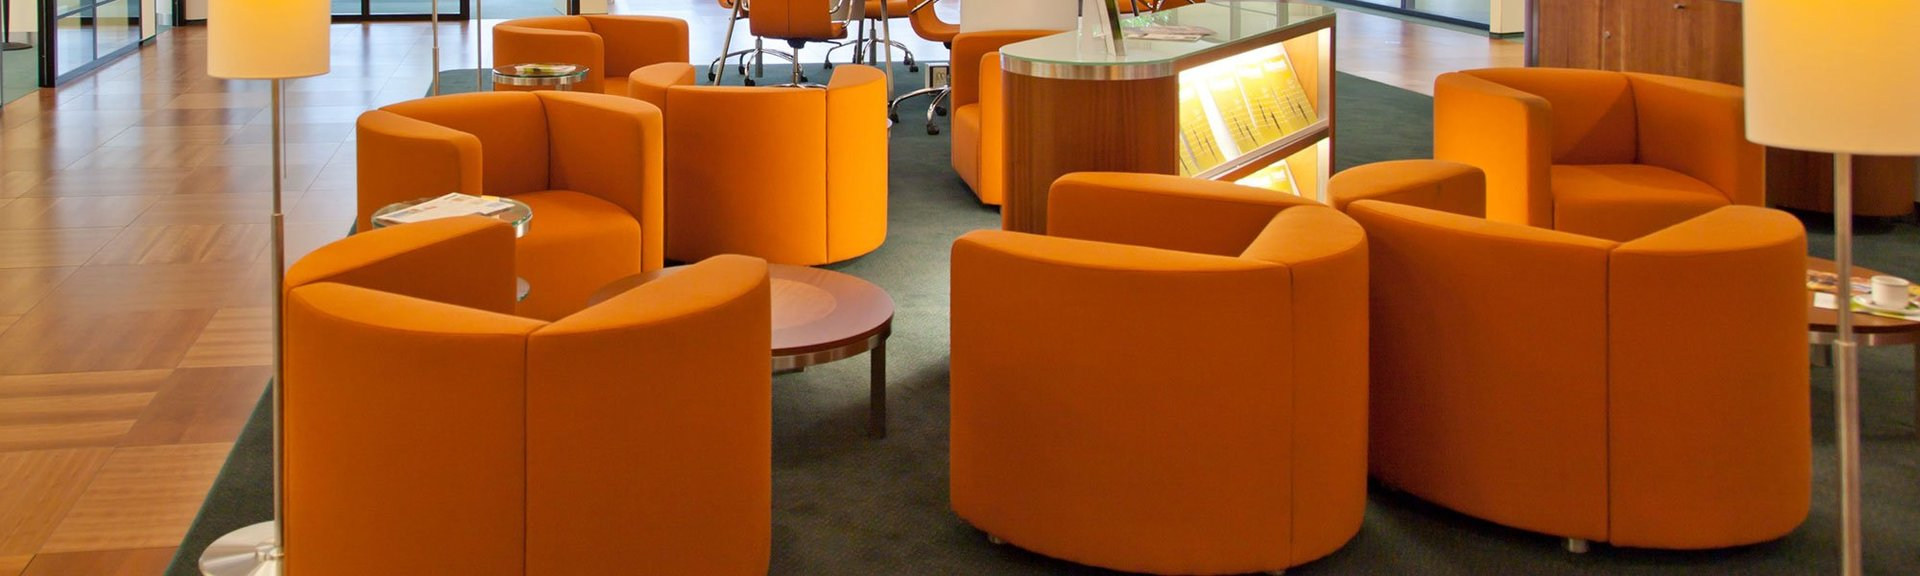 Commercial seating specialist commercial upholstery for Furniture 4 less las vegas